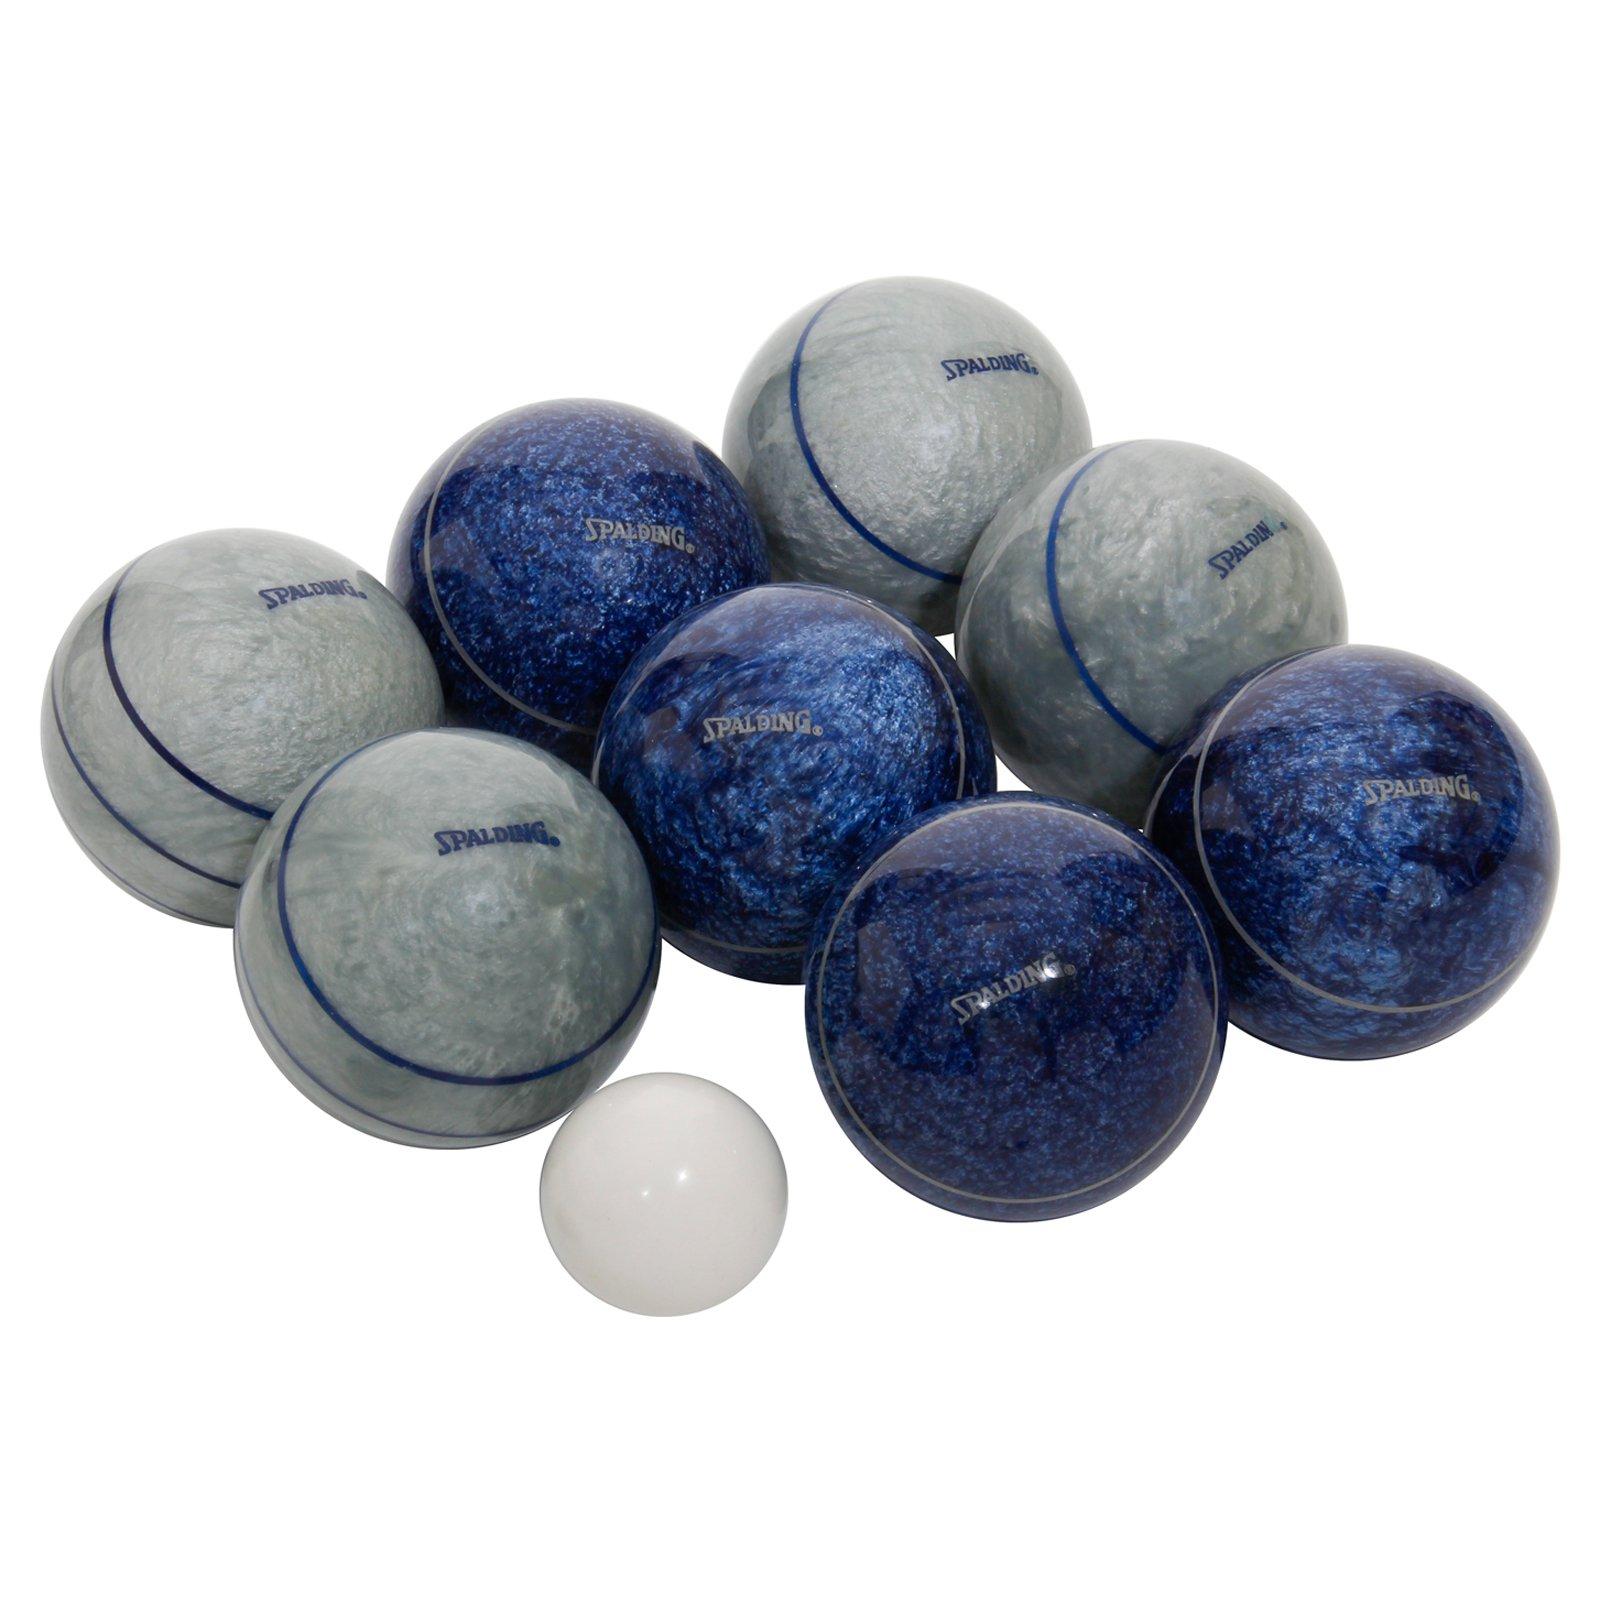 Spalding Professional Bocce Set, 107mm by Triumph Sports USA